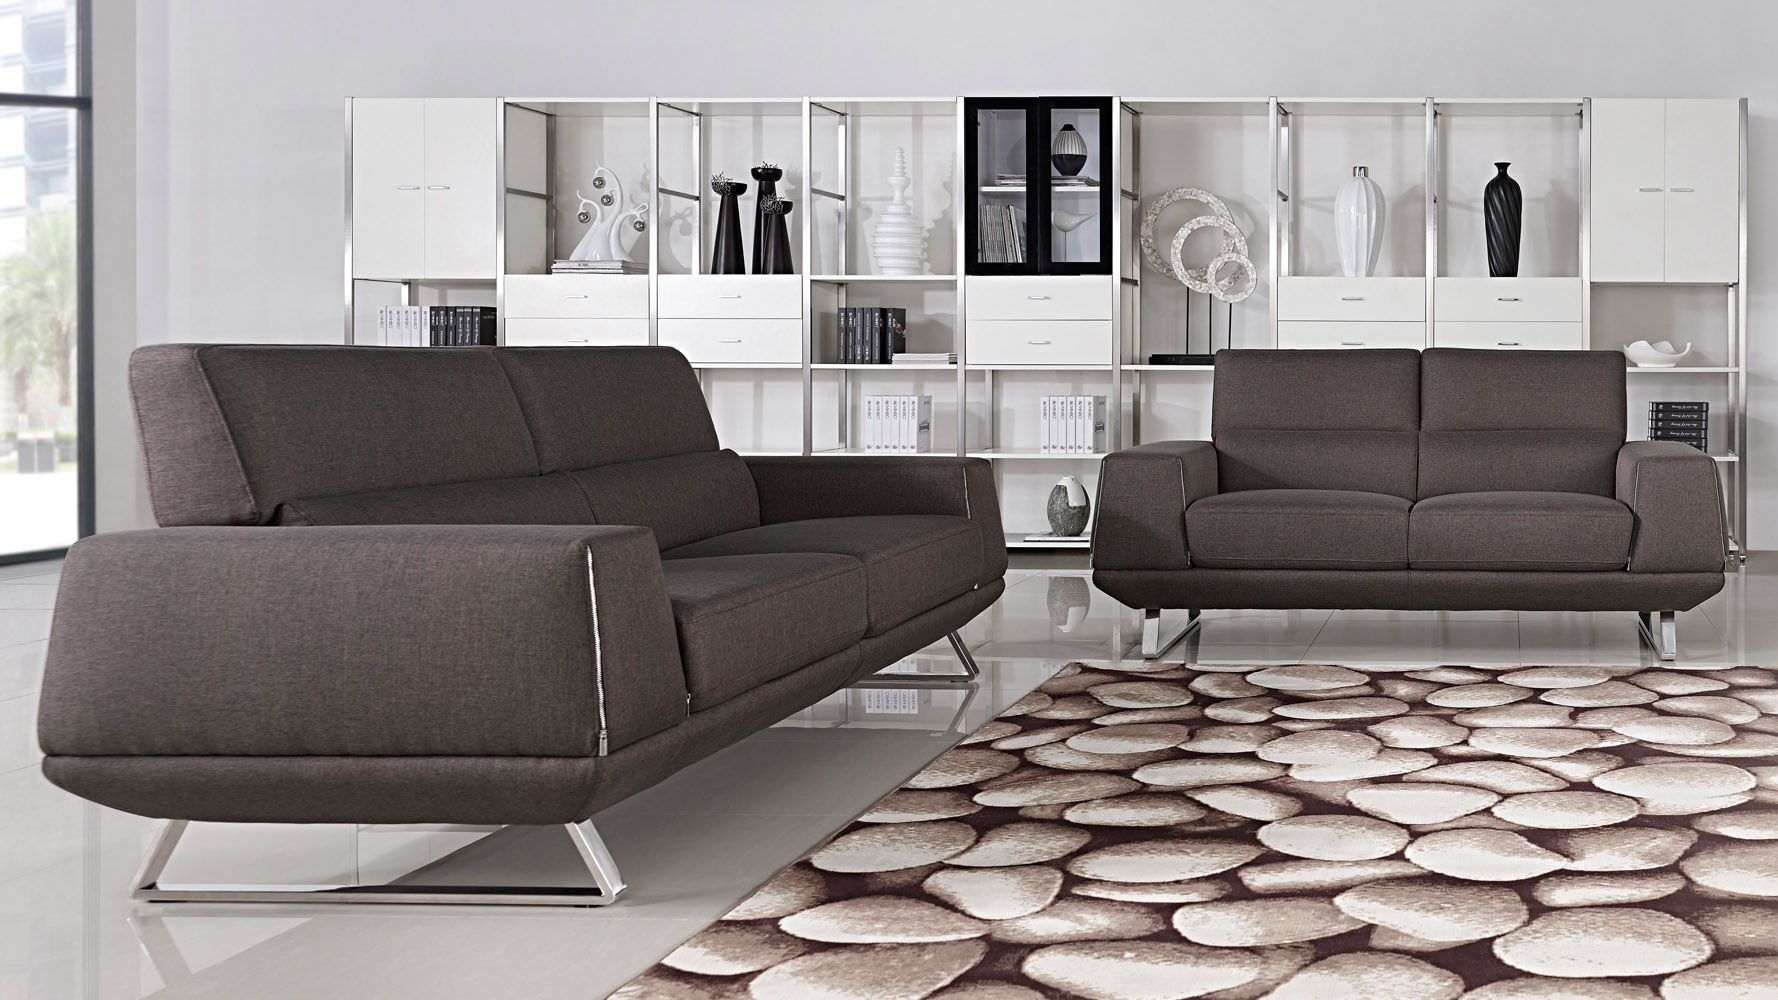 Logan Sofa And Loveseat Set Sofa And Loveseat Set Modern Fabric Sofa Modern Sofa Sectional